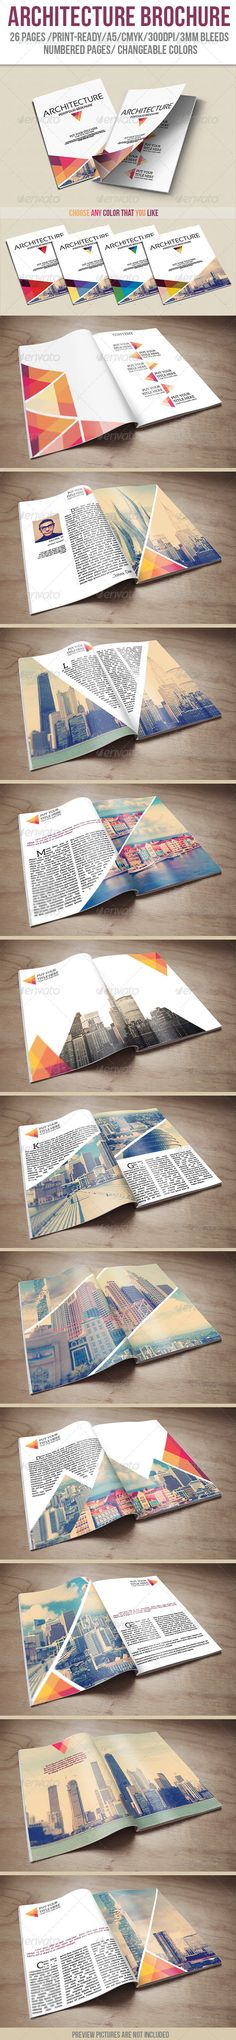 "Check out this great 26 pages #arch #print #brochure template ""Architecture Portfolio Brochure"""